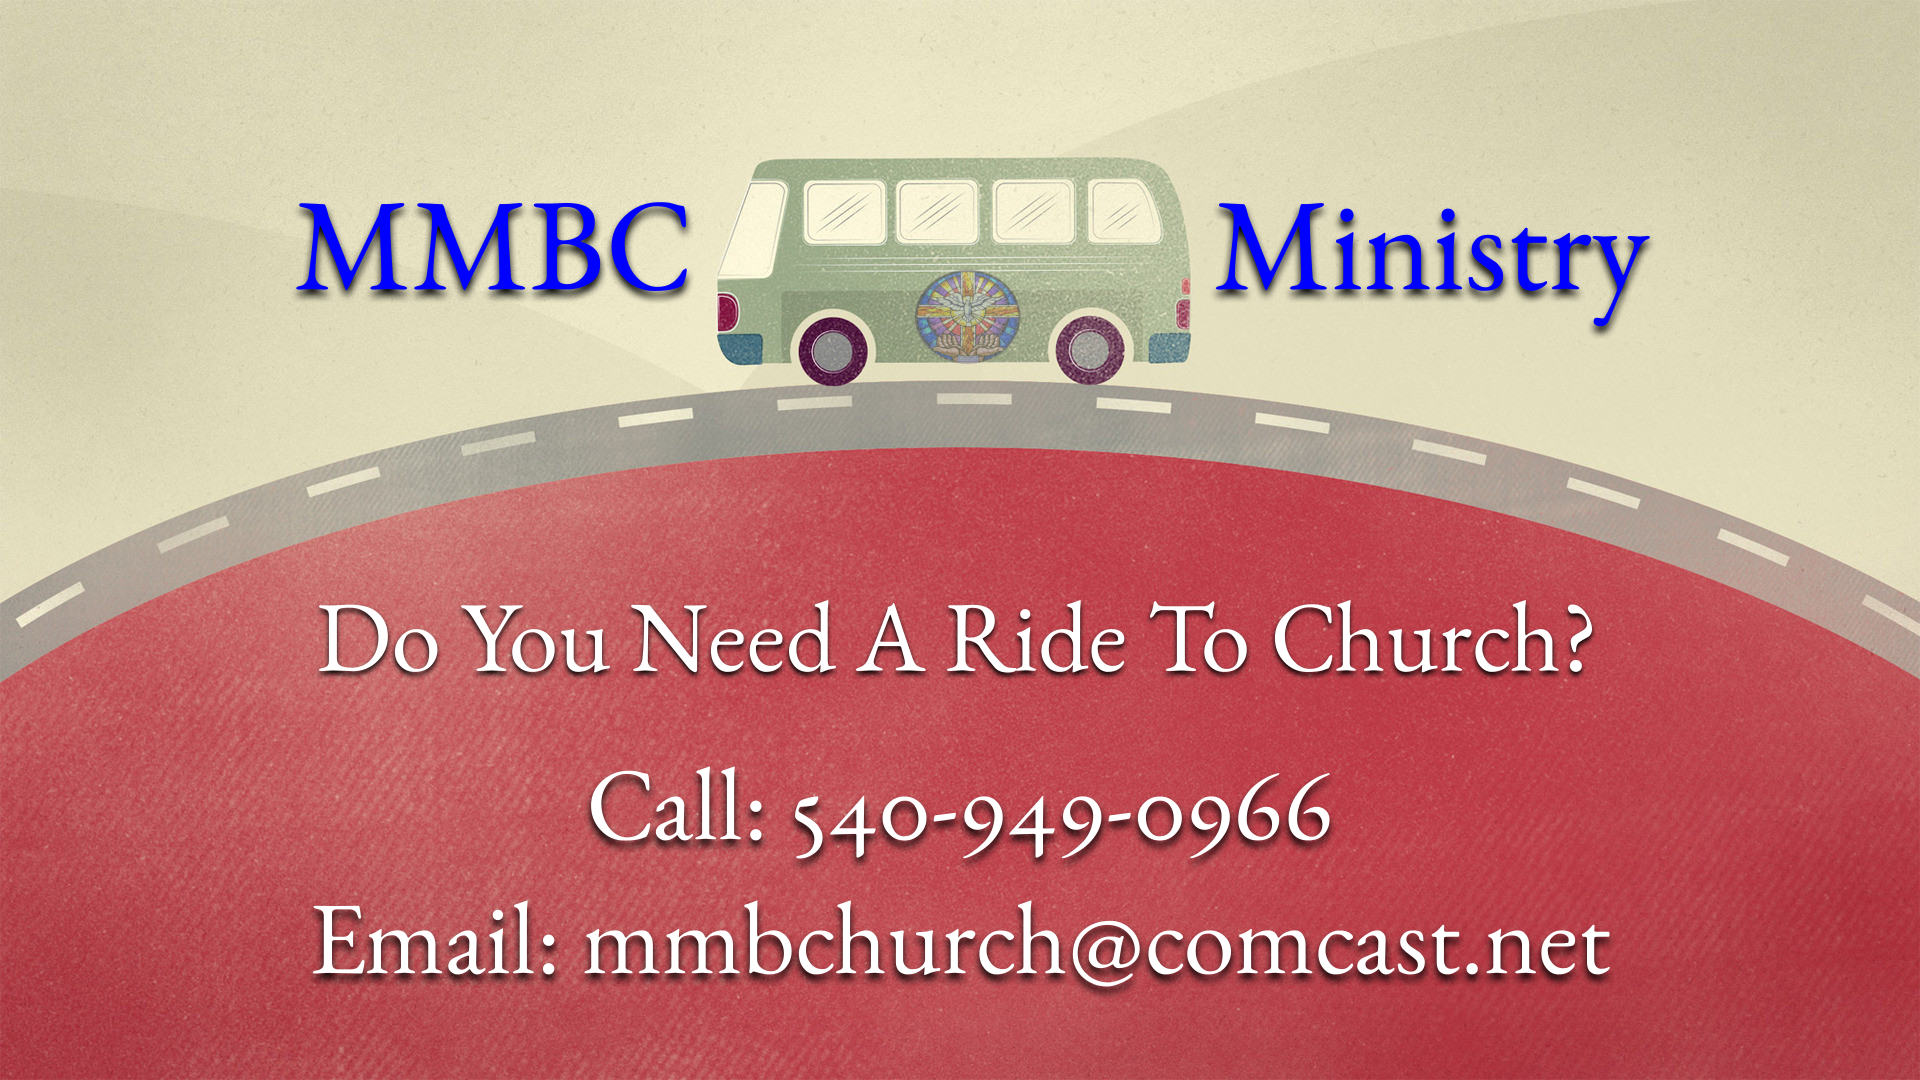 MMBC Bus Ministry